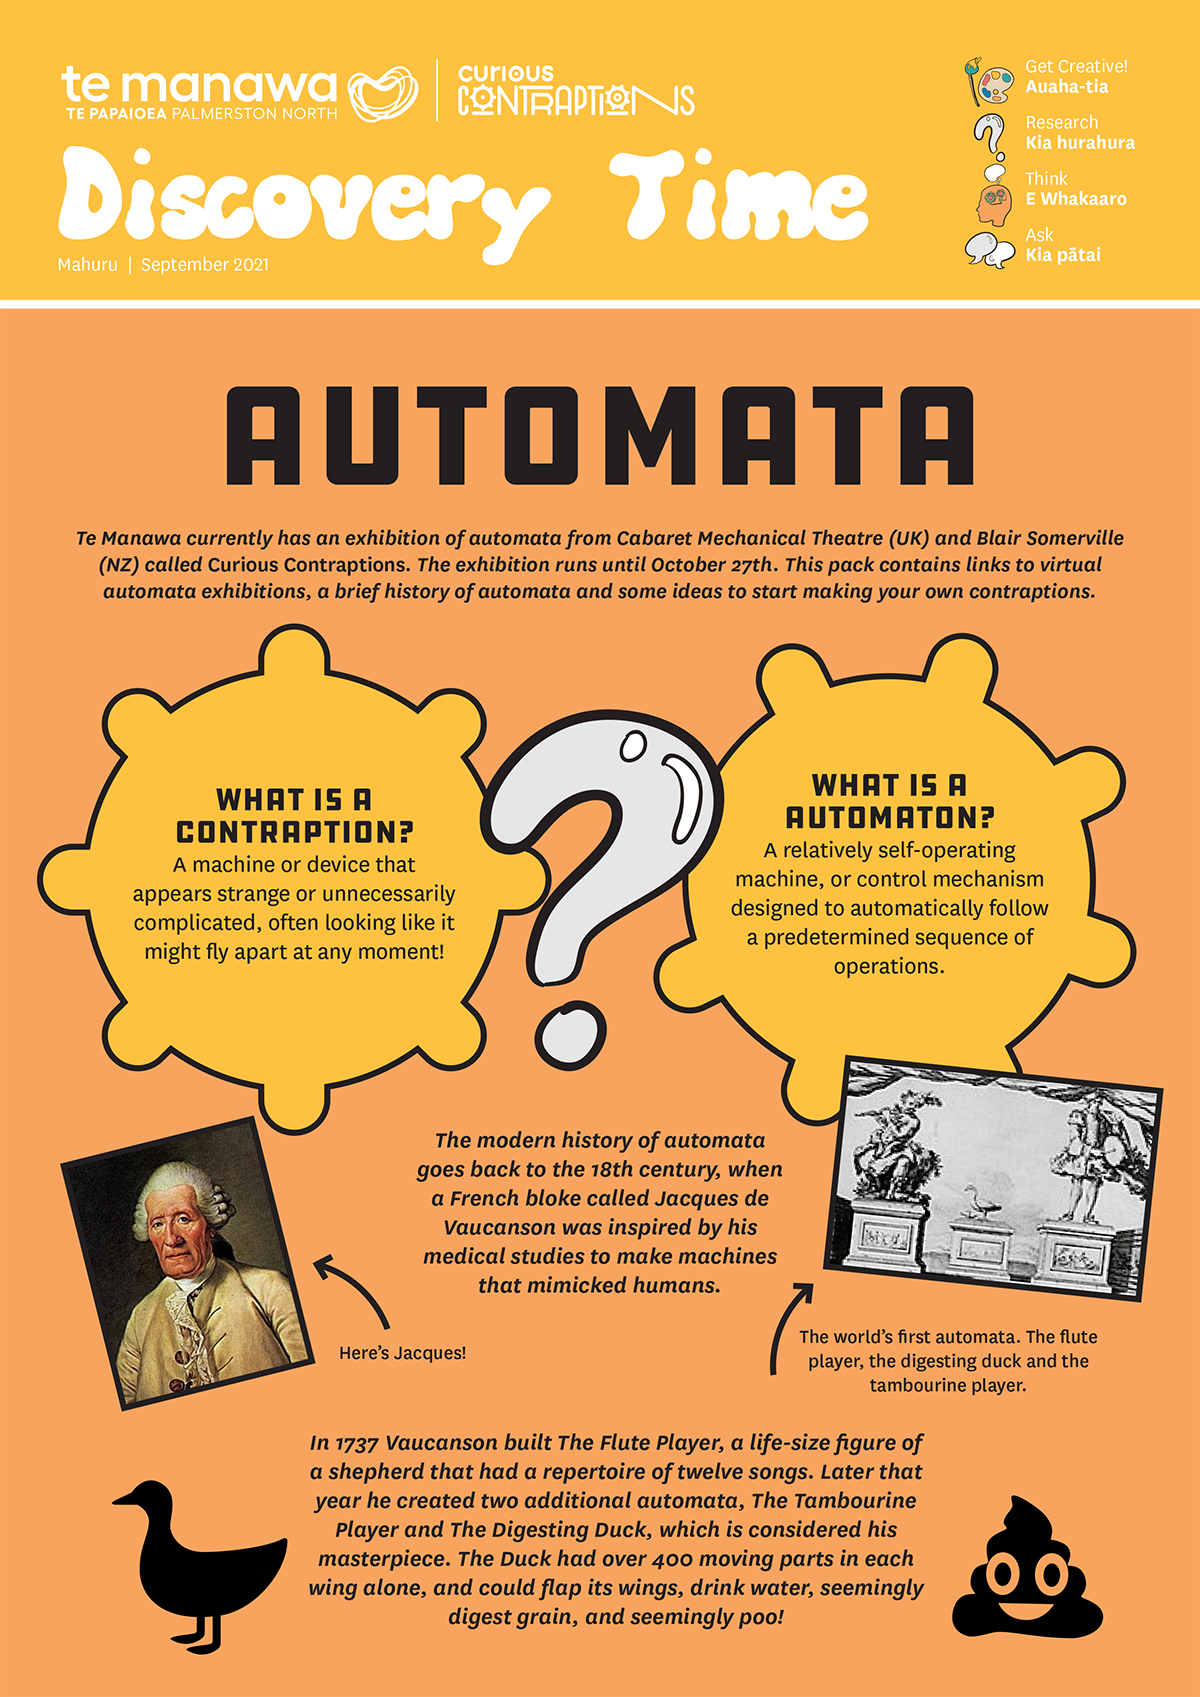 https://www.temanawa.co.nz/wp-content/uploads/2021/10/Discovery-Time-Automata-v1-1.png